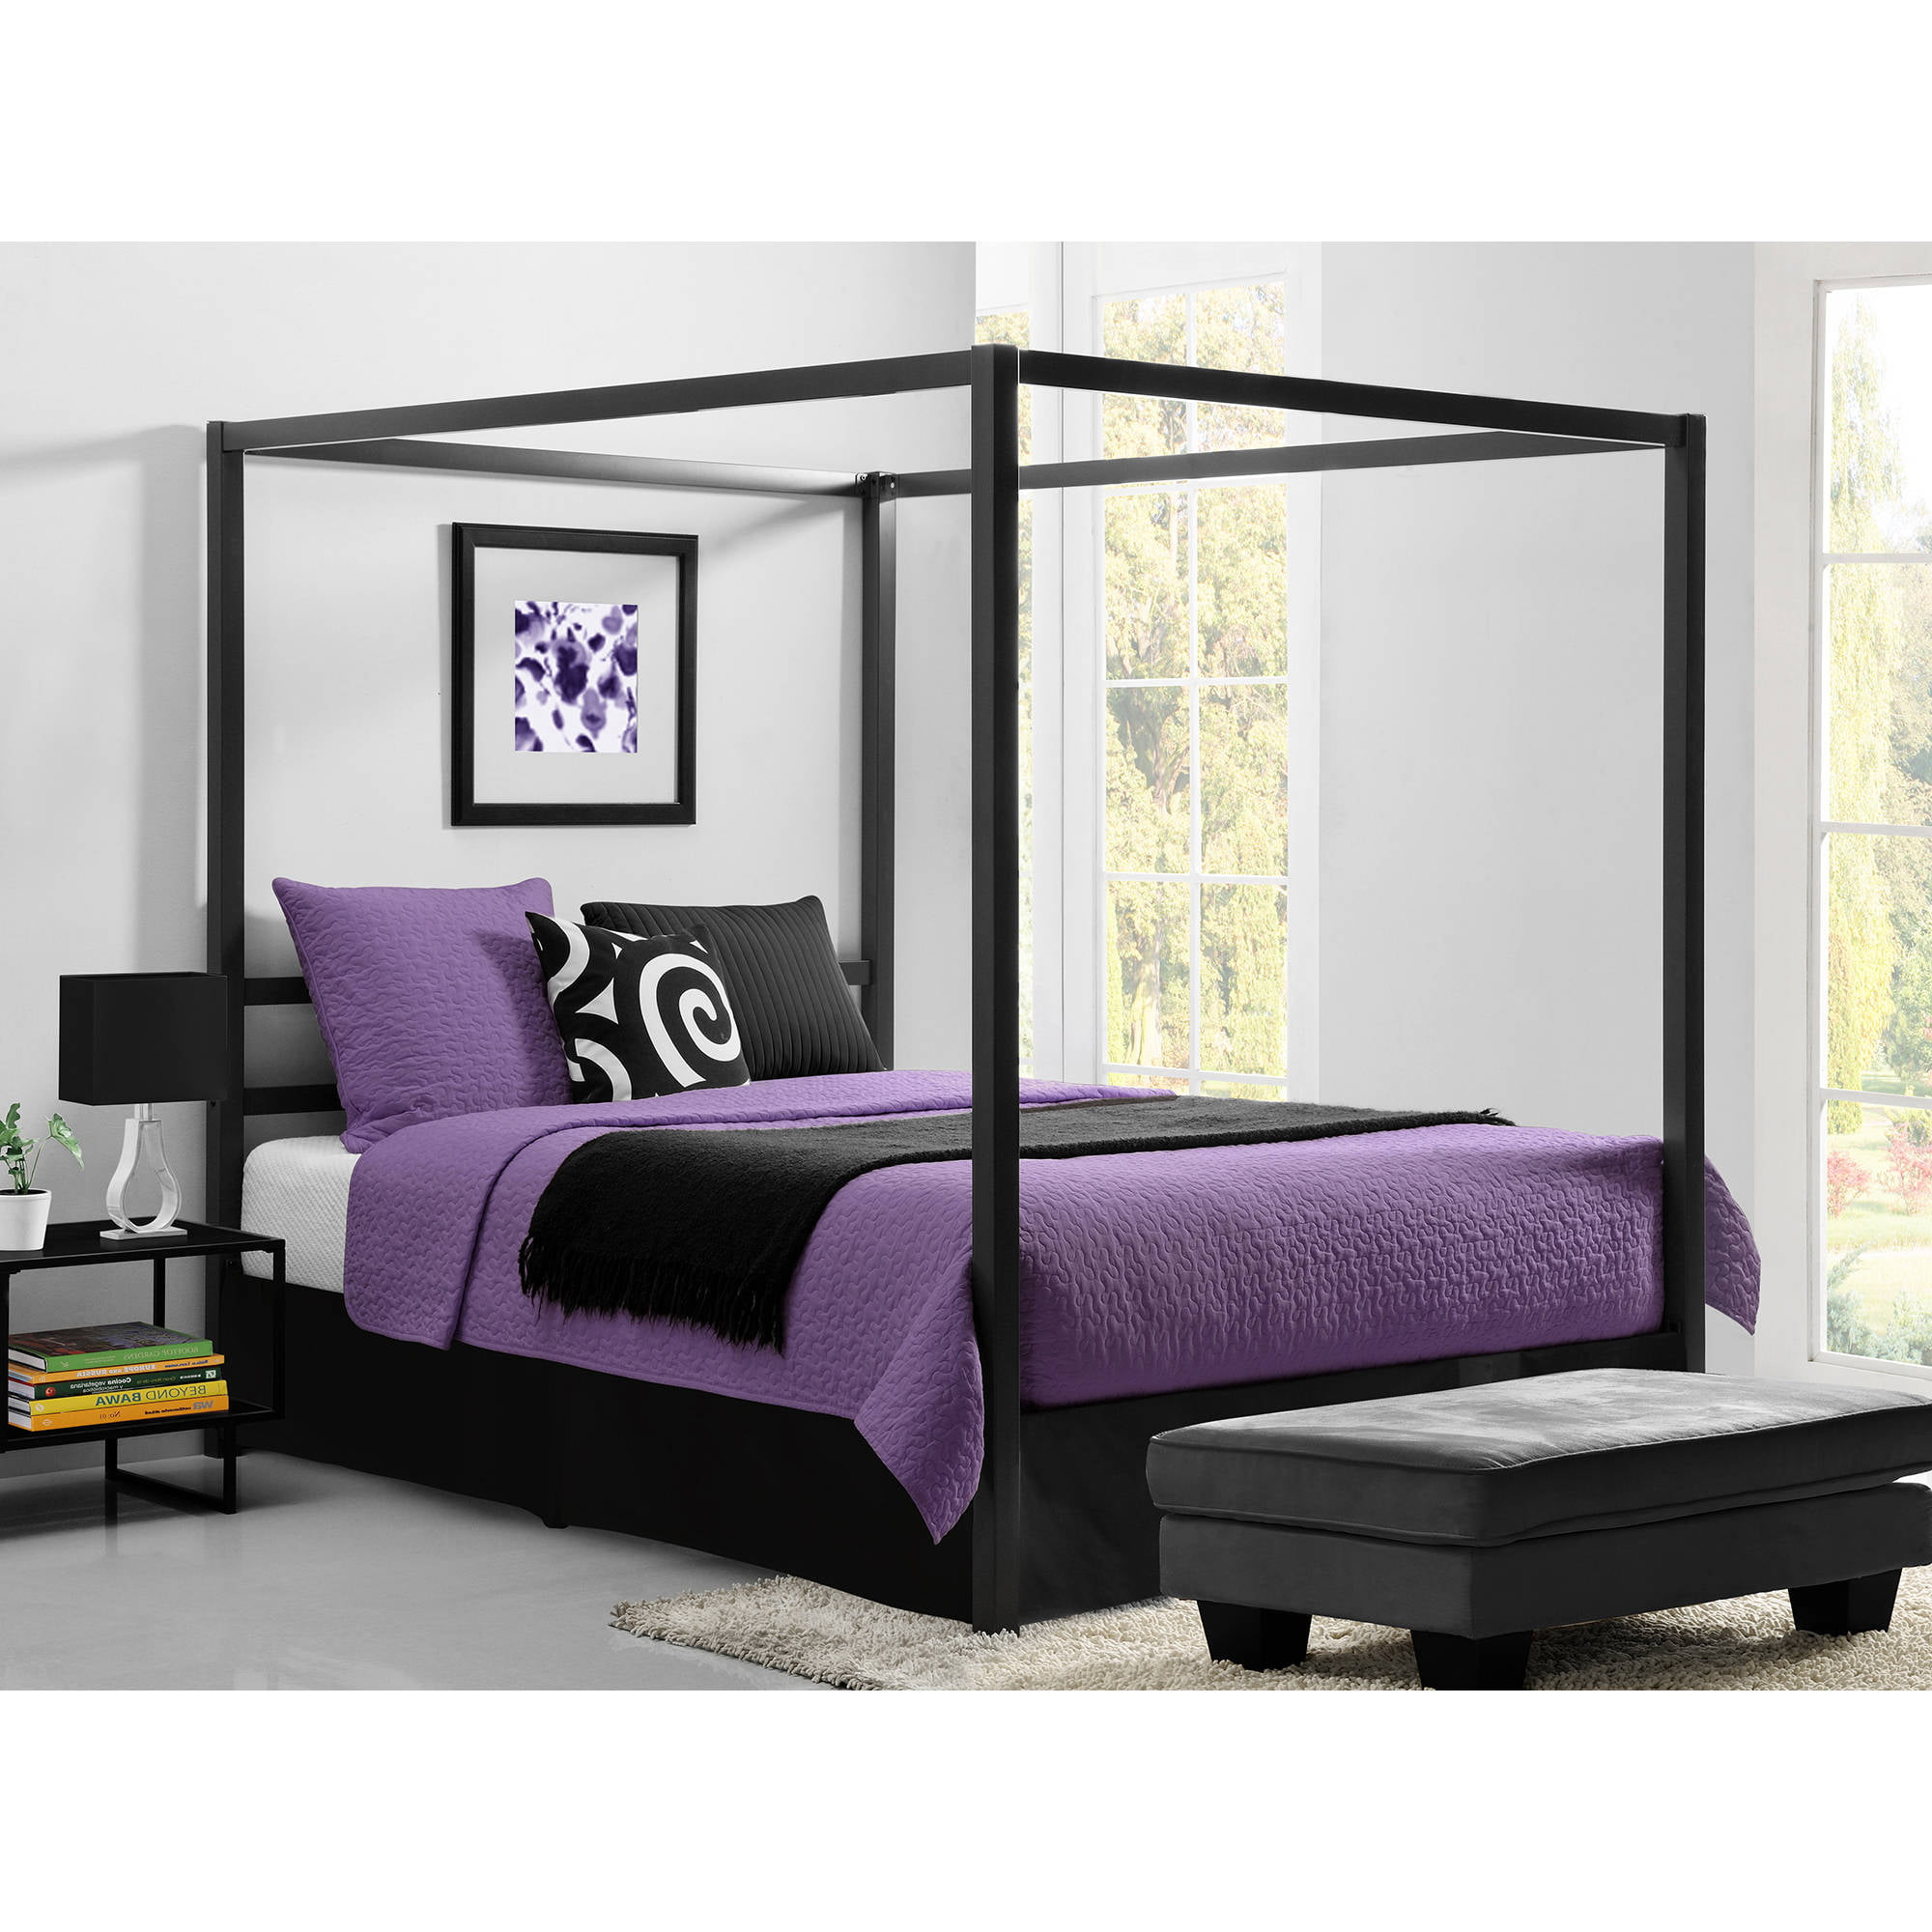 Dhp Modern Canopy Metal Bed Multiple Colors Sizes